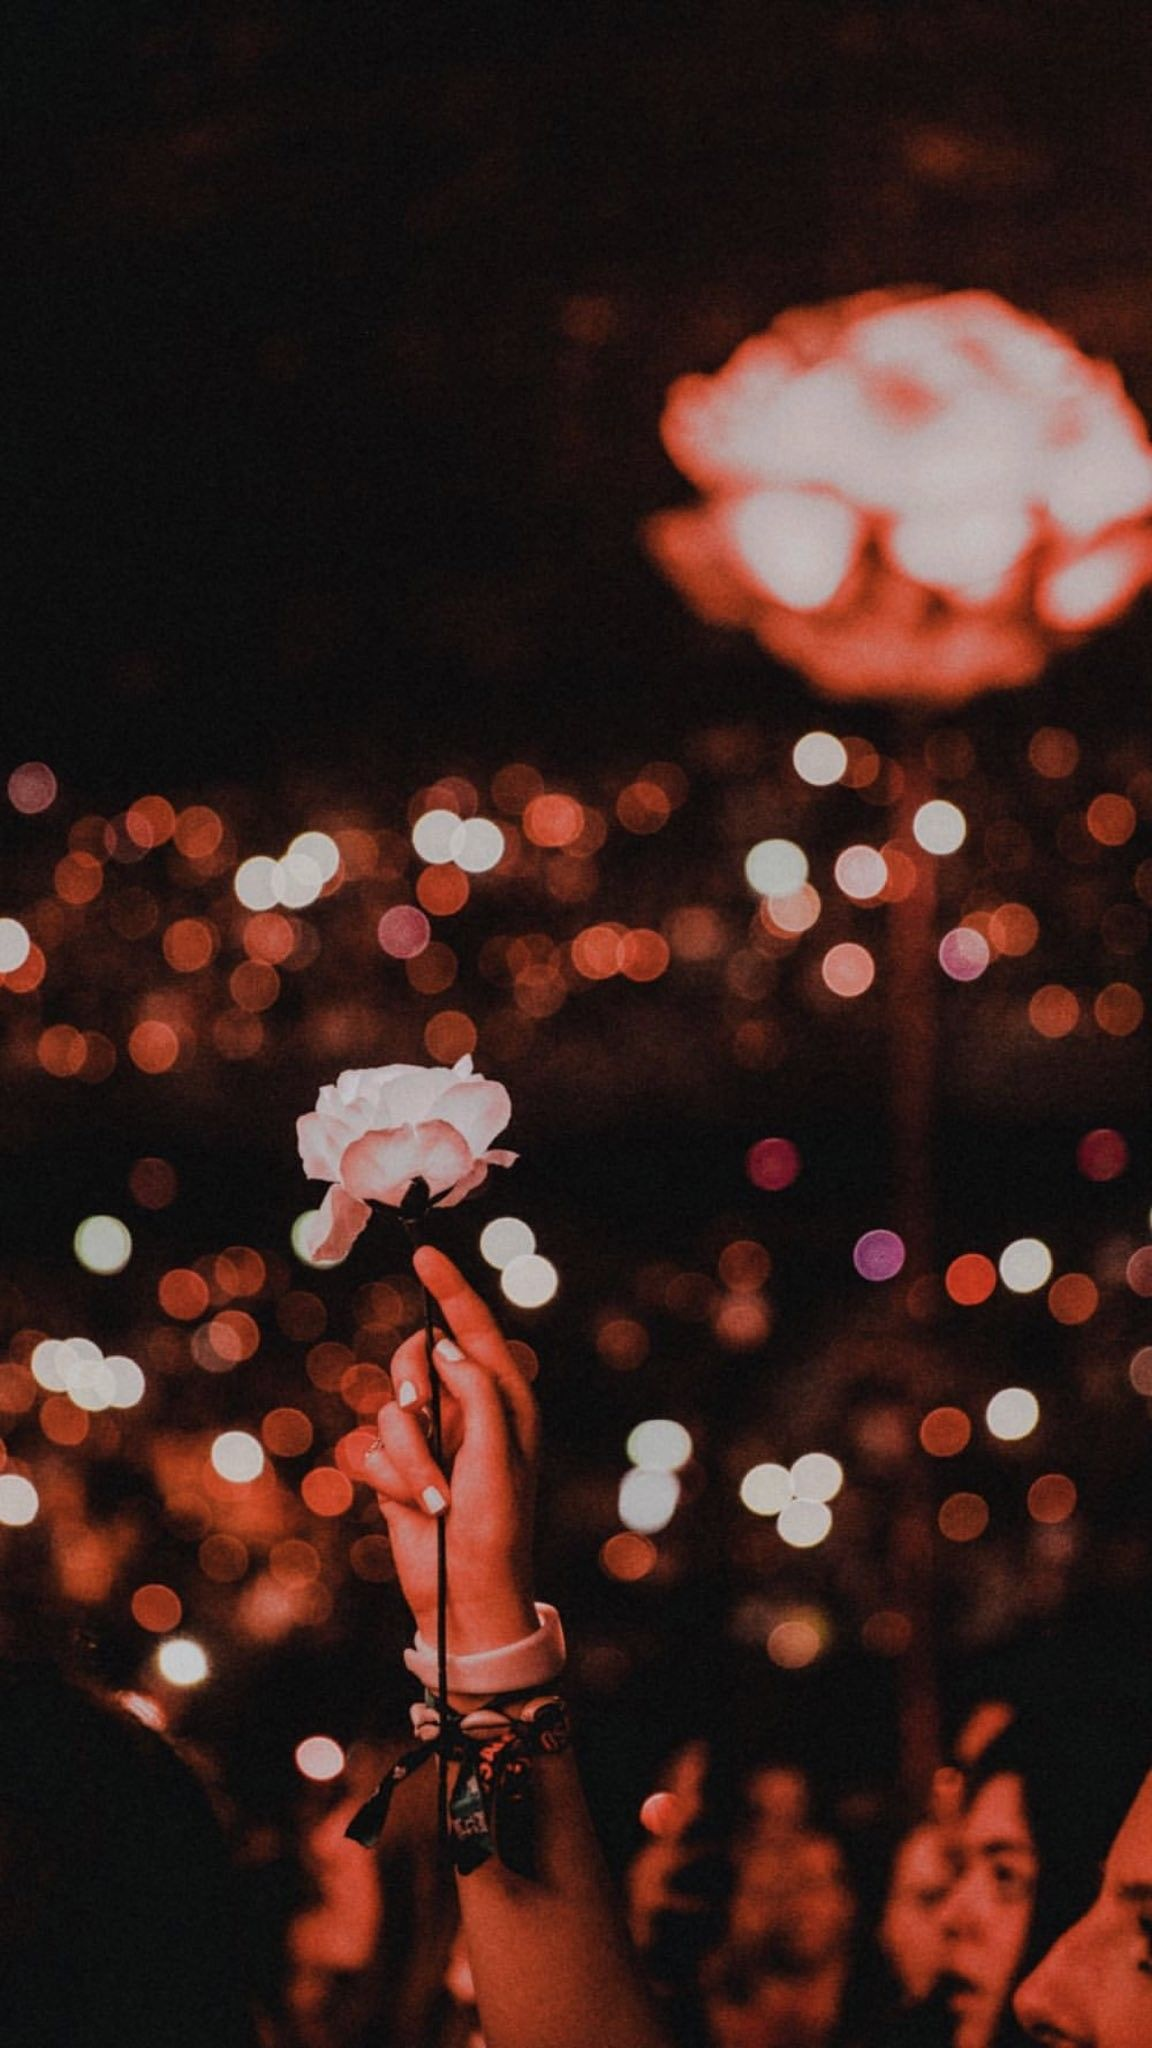 Pin By Abigail On Shawn Mendes Shawn Mendes Wallpaper Shawn Mendes Tour Shawn